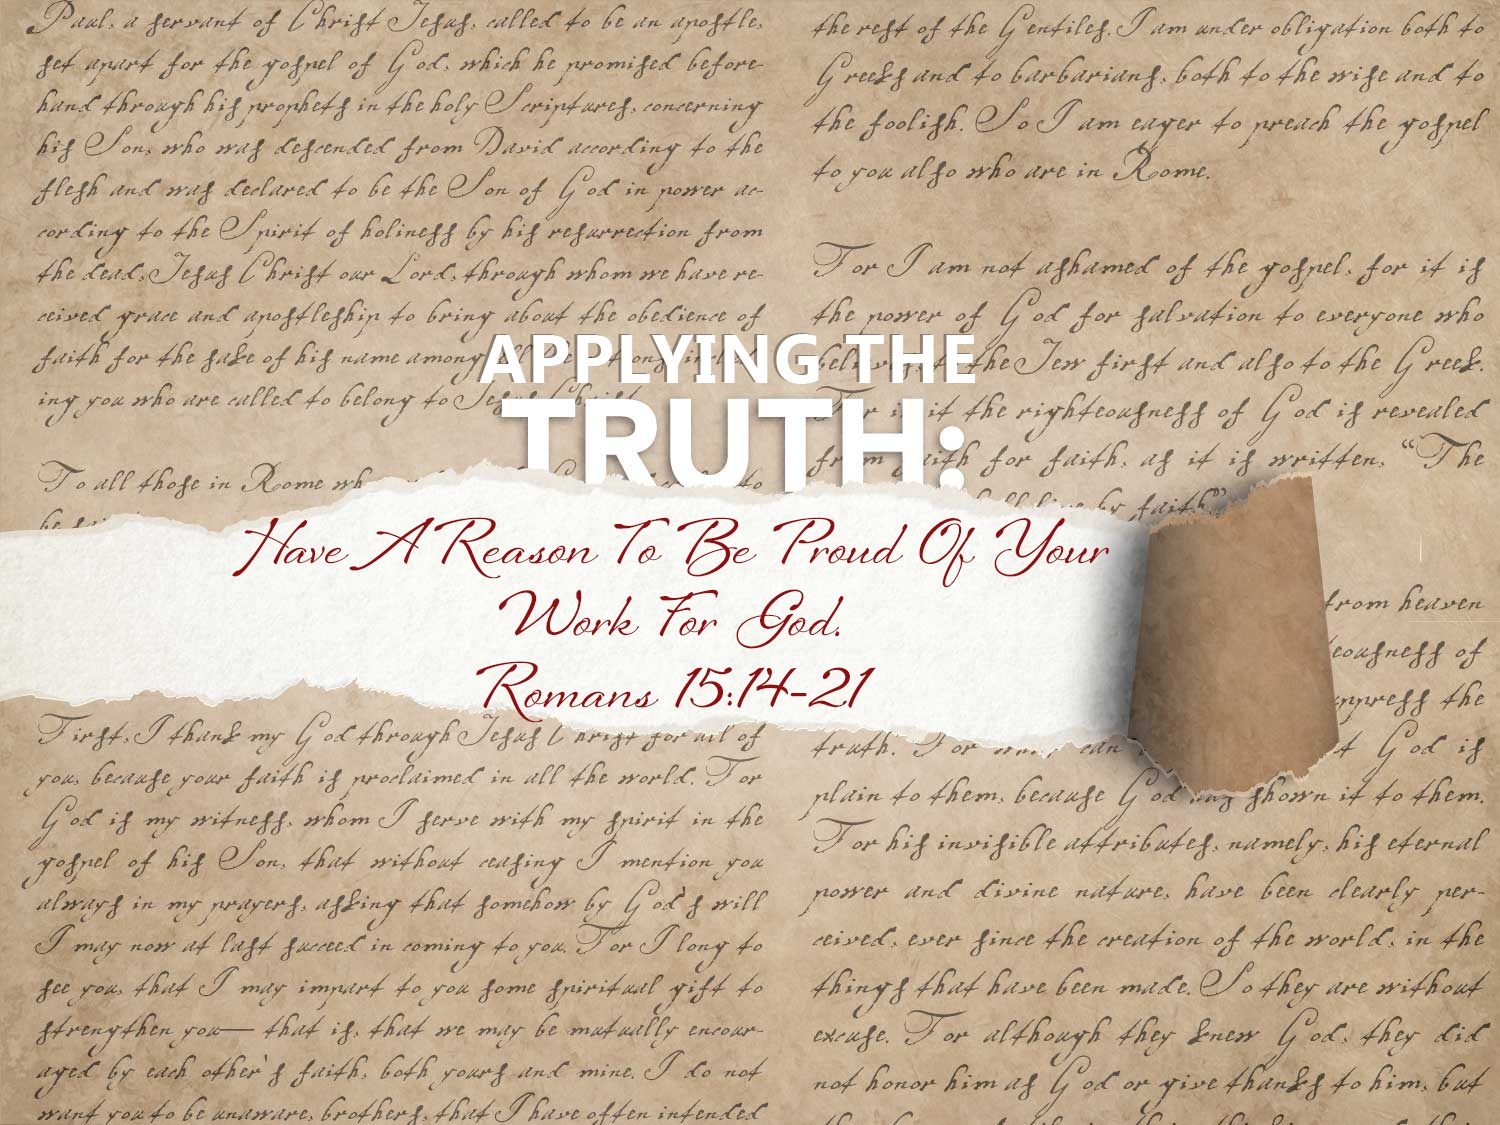 Romans 15 v 14-21 Have A Reason To Be Proud Of Your Work For God